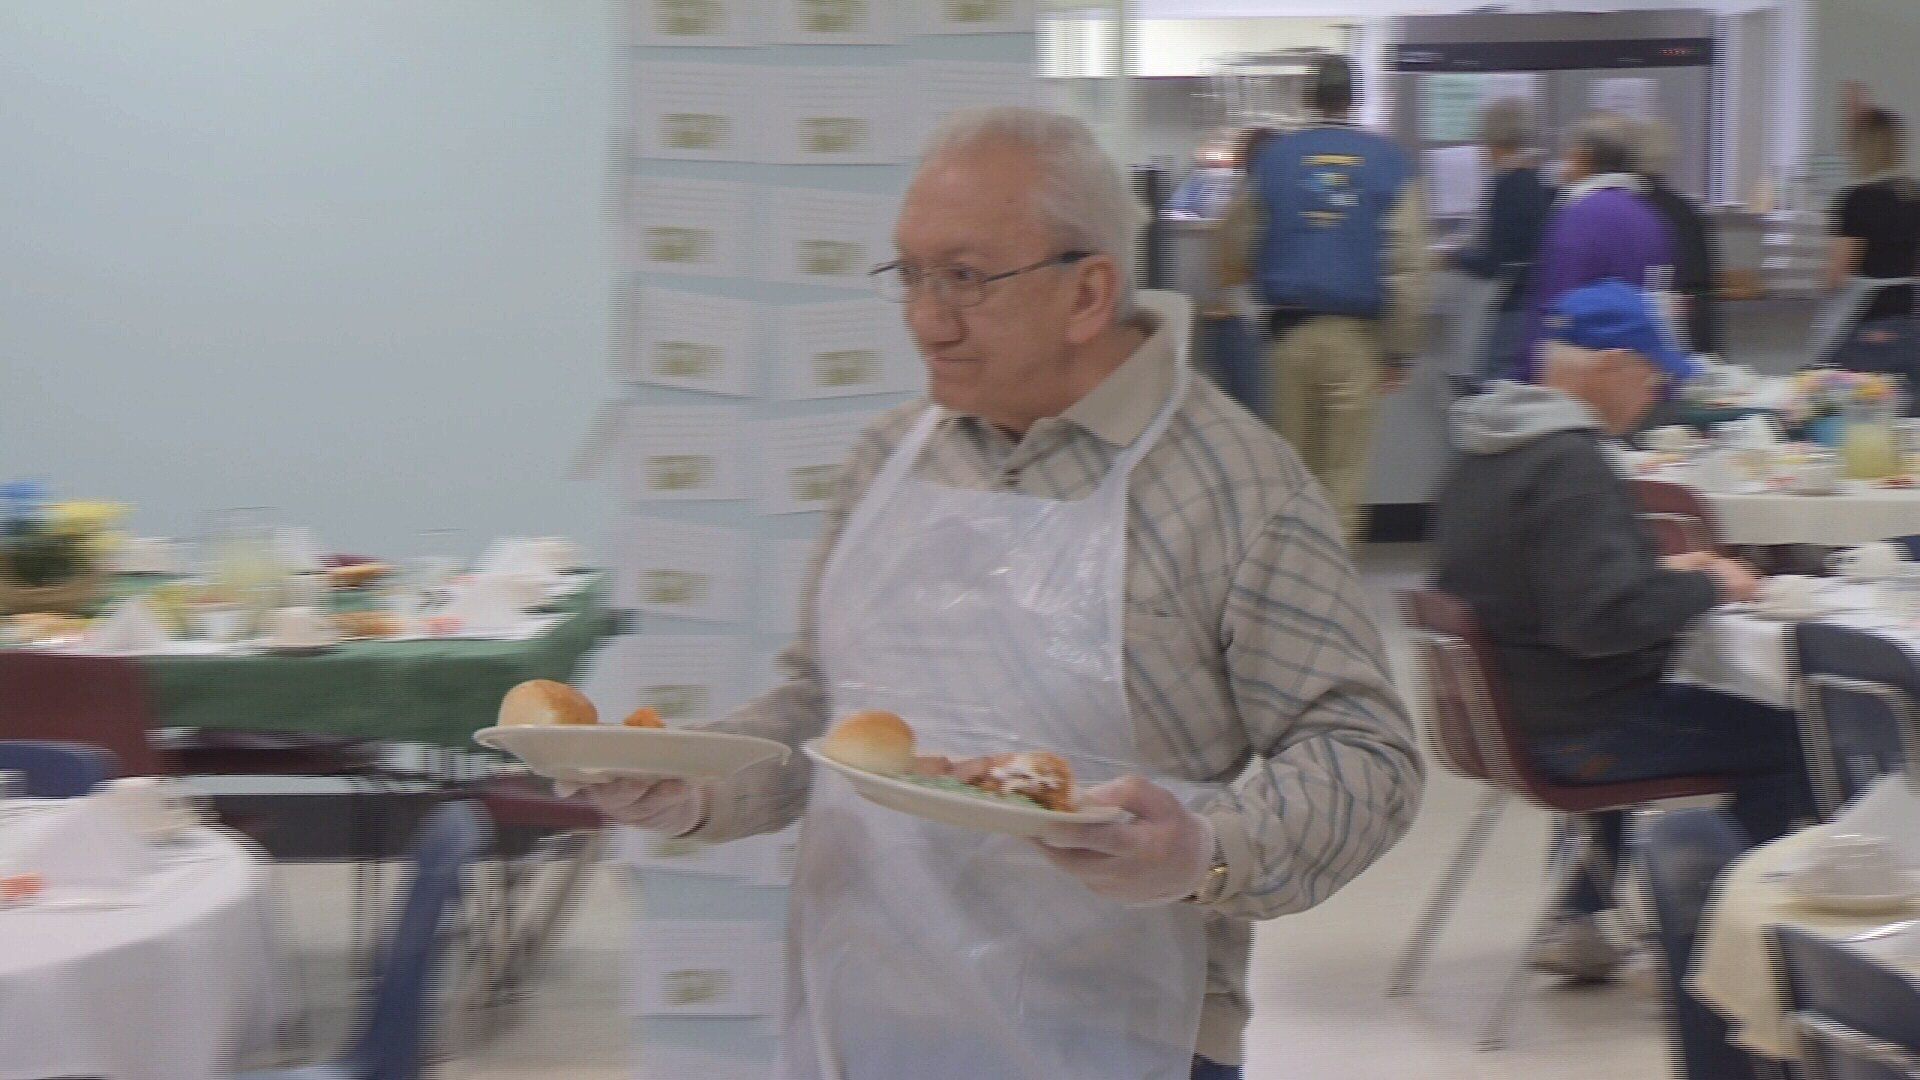 Wausau Mine Company breaks record with Easter meal